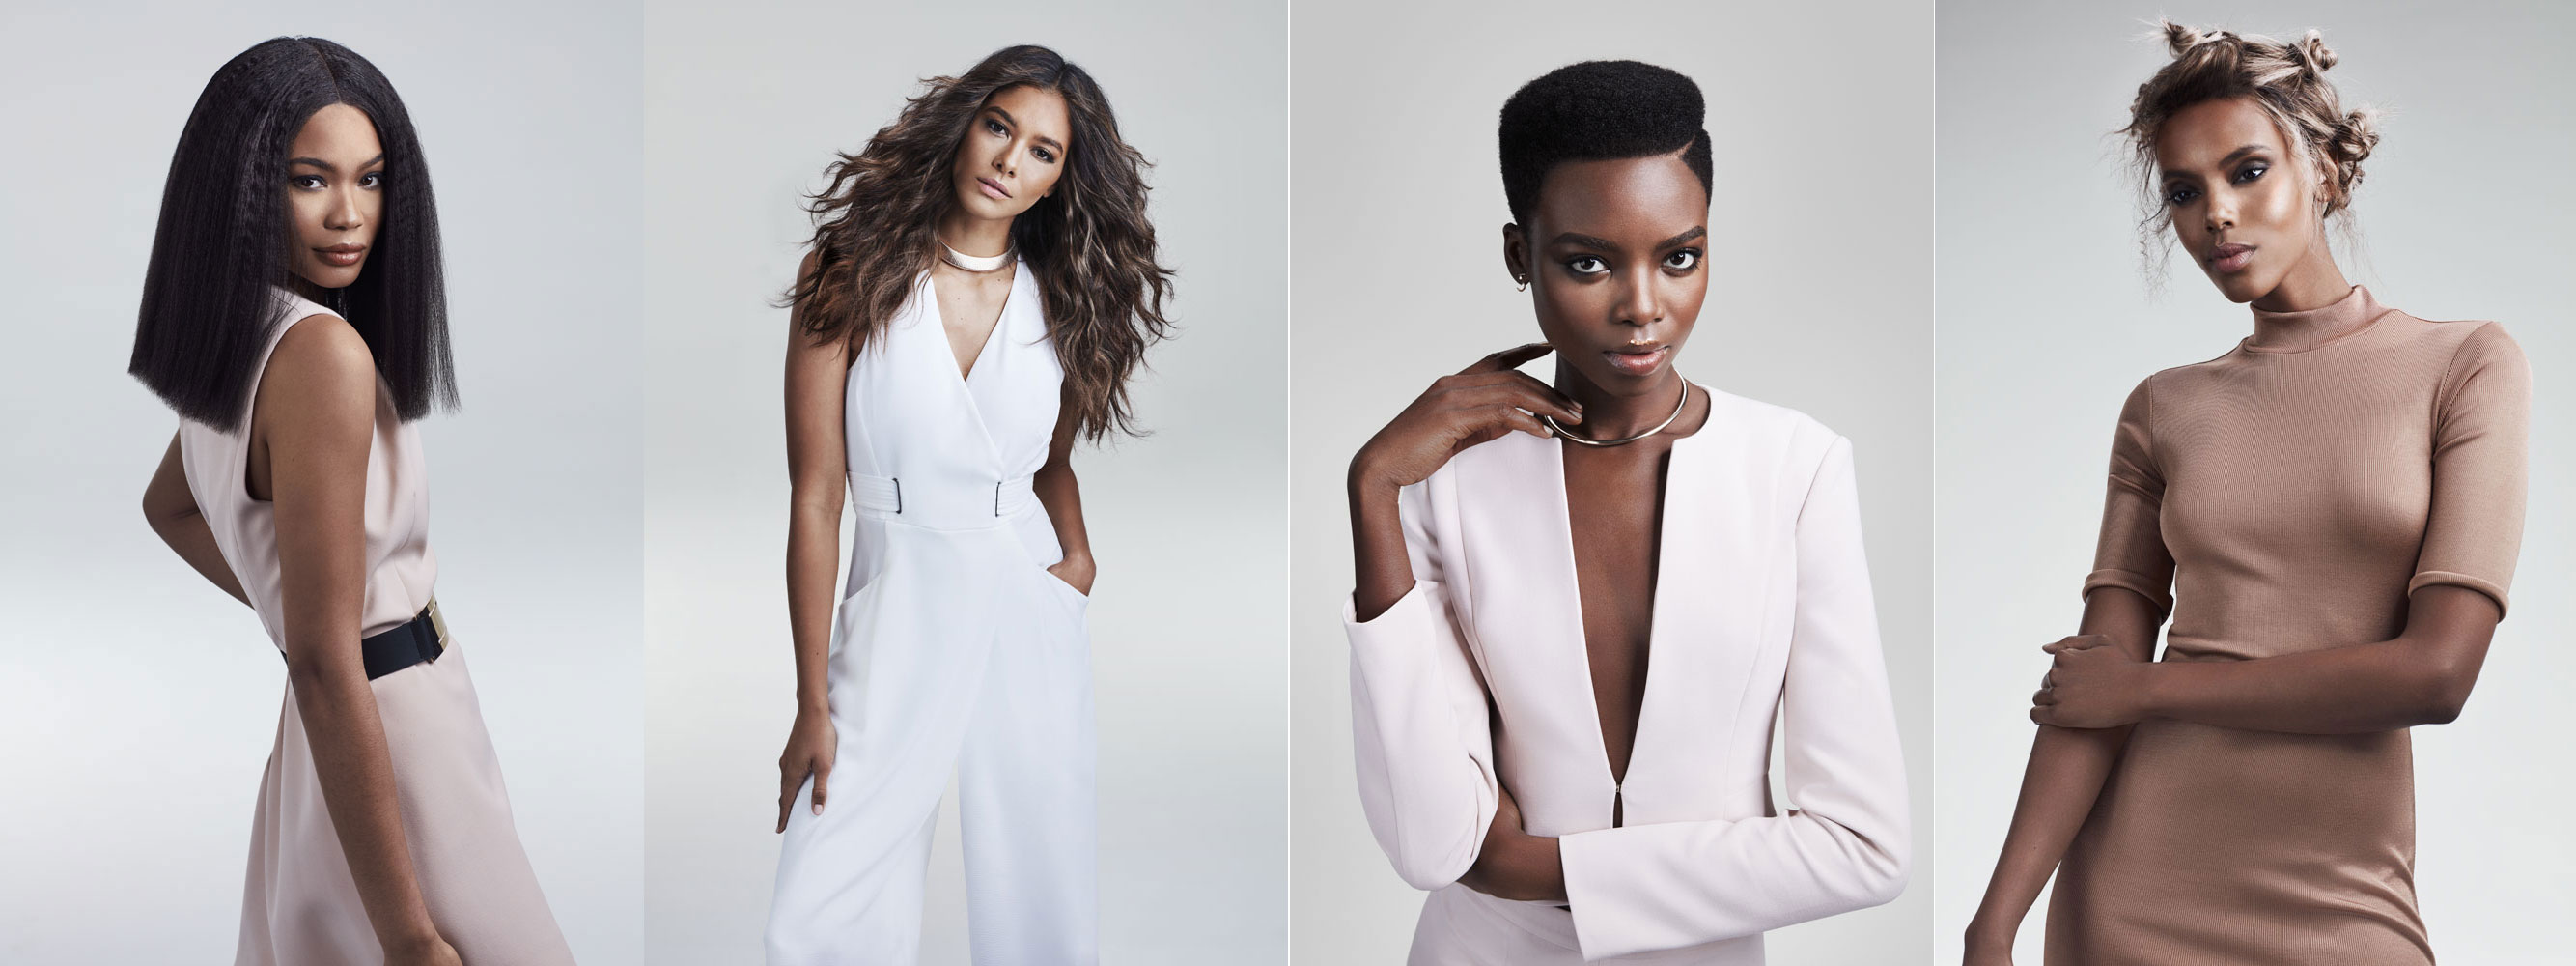 MIZANI's New Style Icons Showcase the Styling Versatility of Textured Hair